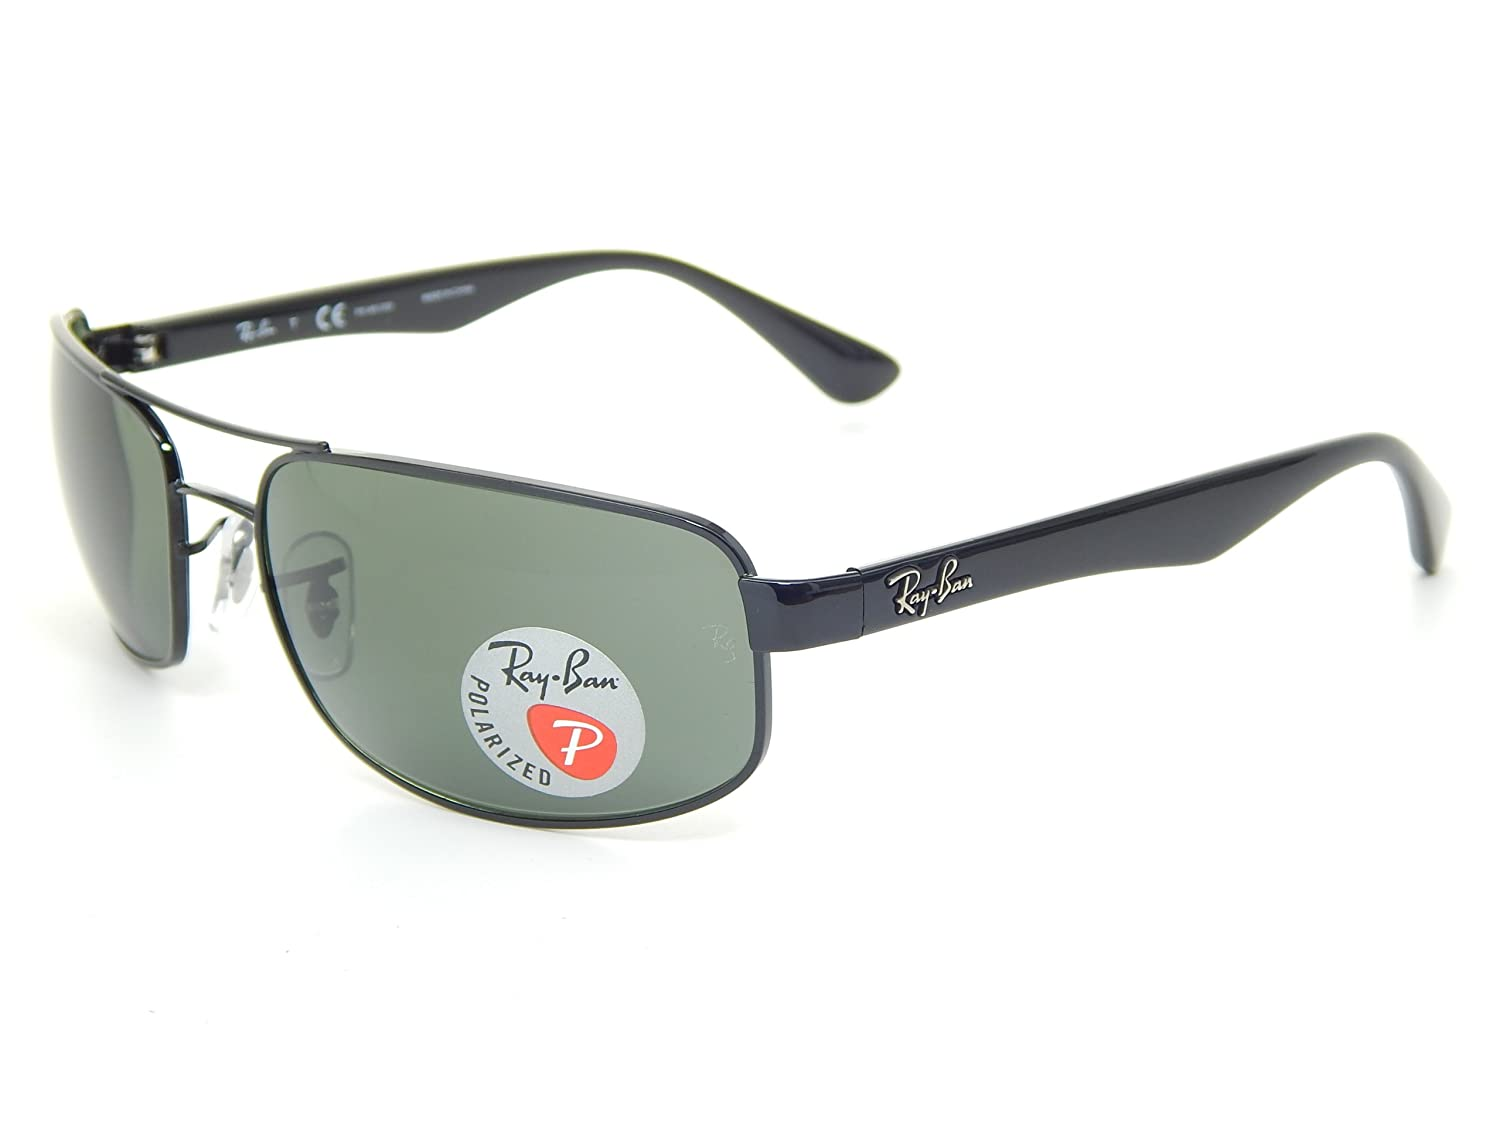 27a1dd5fd58 Amazon.com  Ray Ban RB3445 002 58 Black Crystal Green Polarized 61mm  Sunglasses  Shoes